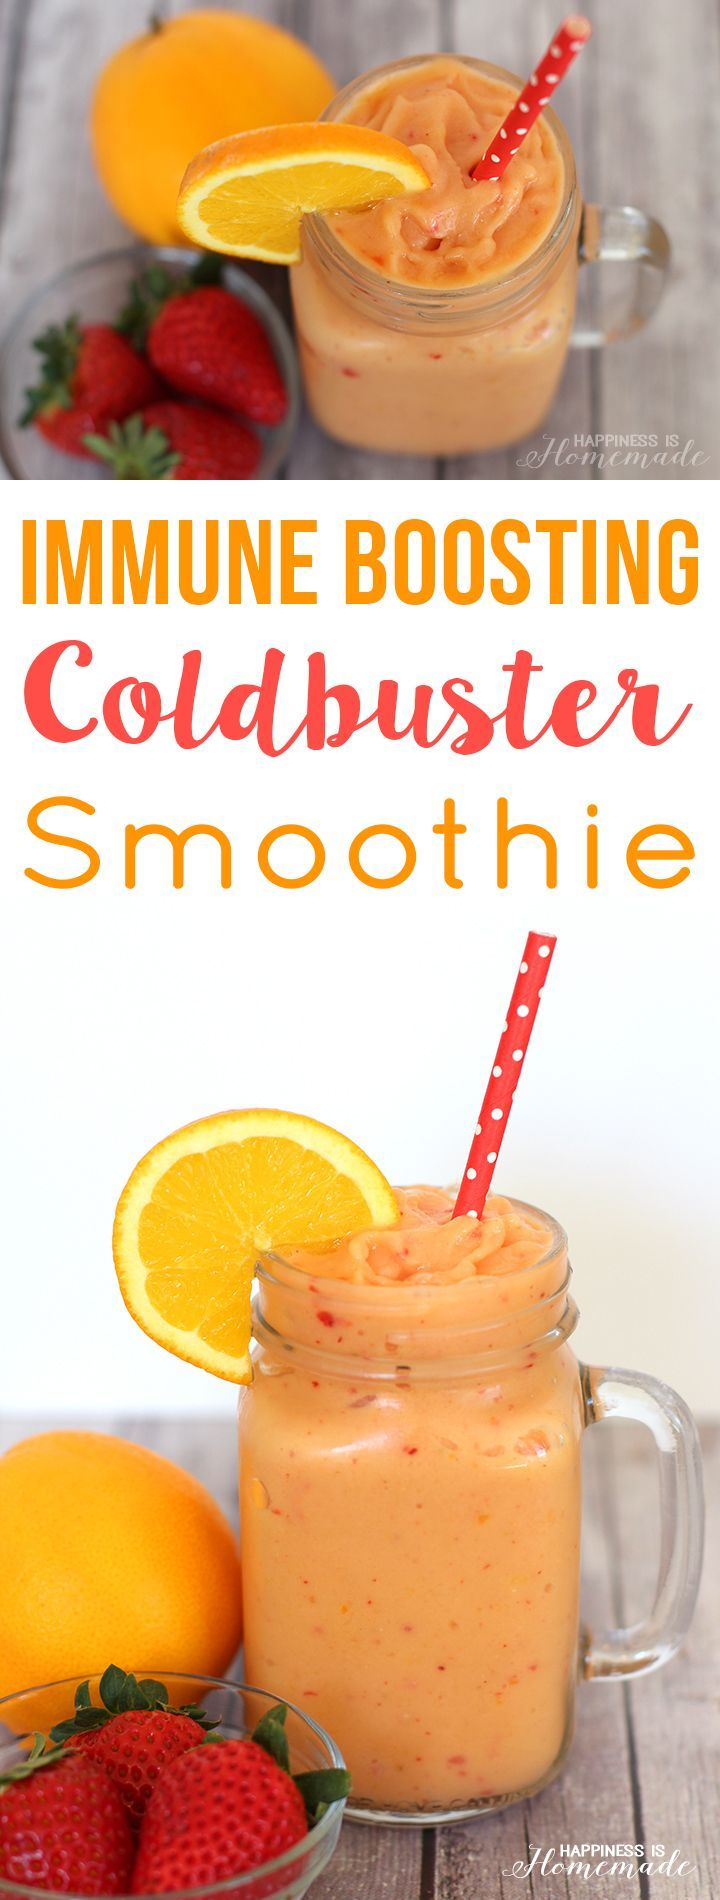 Coldbuster Immune Boosting Smoothie - stay healthy this cold and flu season with this delicious immunity boosting smoothie packed full of Vitamin C and antioxidants